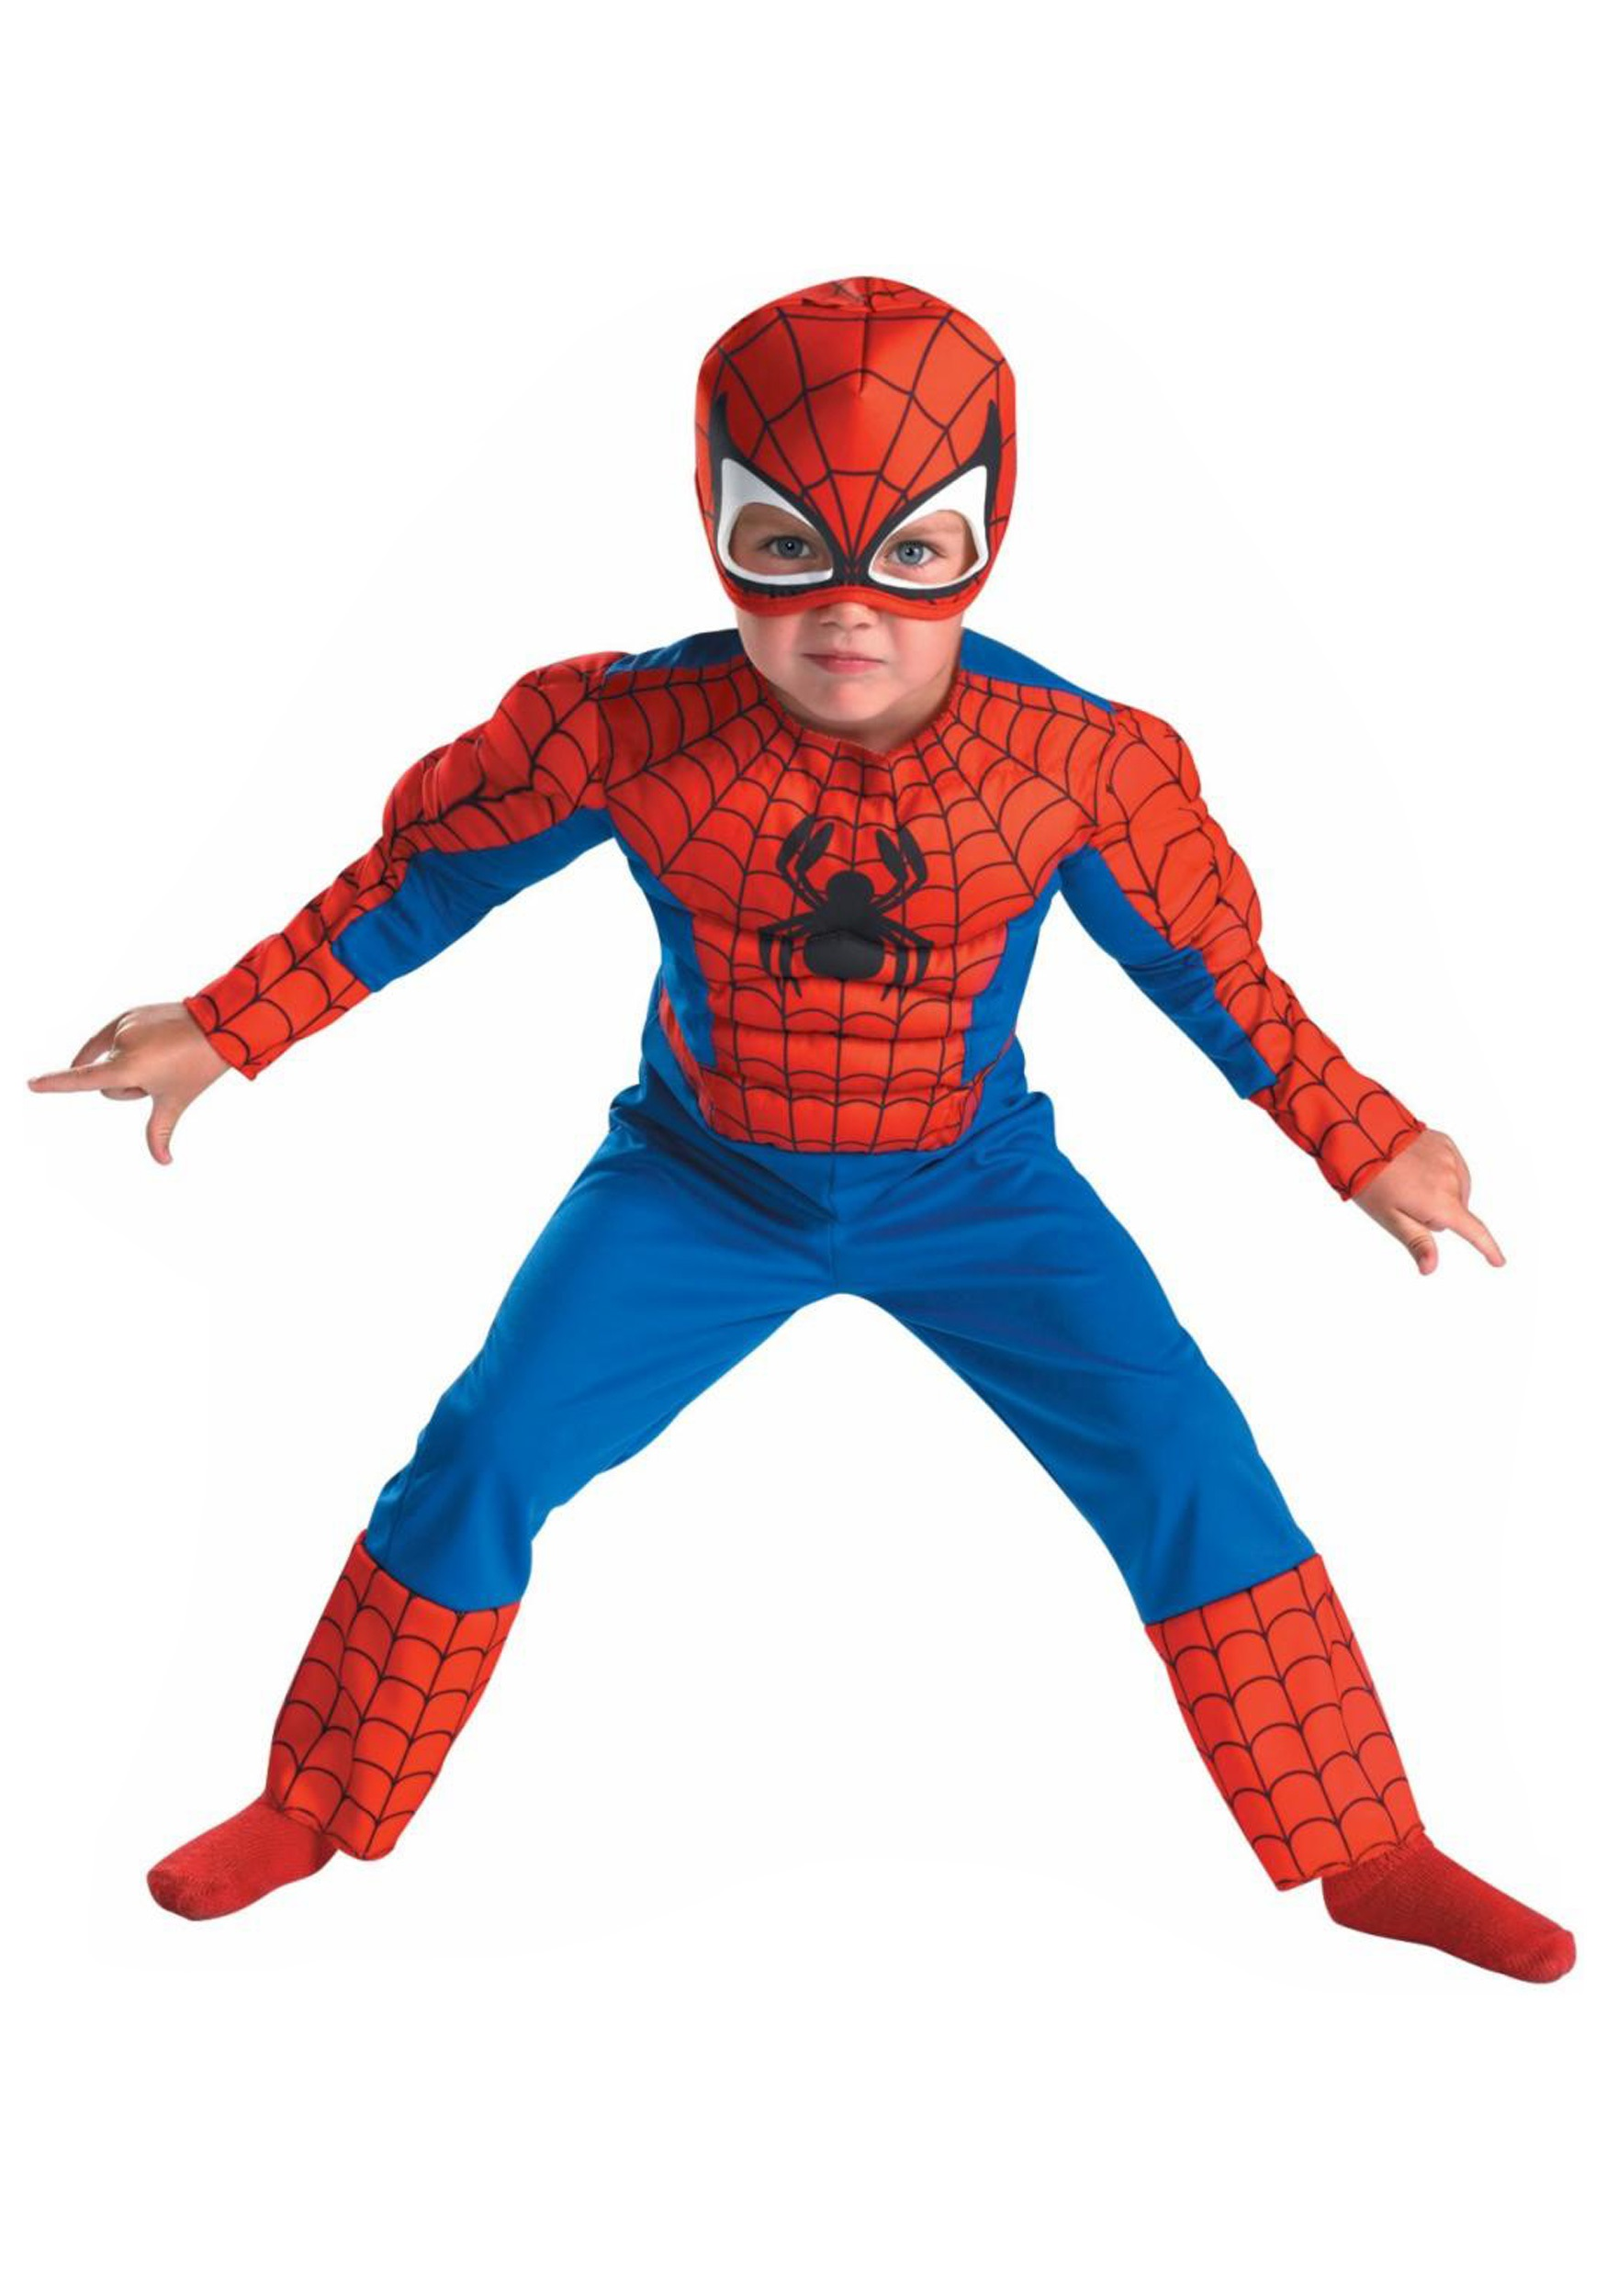 Deluxe Toddler Spiderman Costume  sc 1 st  Halloween Costumes & Deluxe Toddler Spiderman Costume - Halloween Costumes